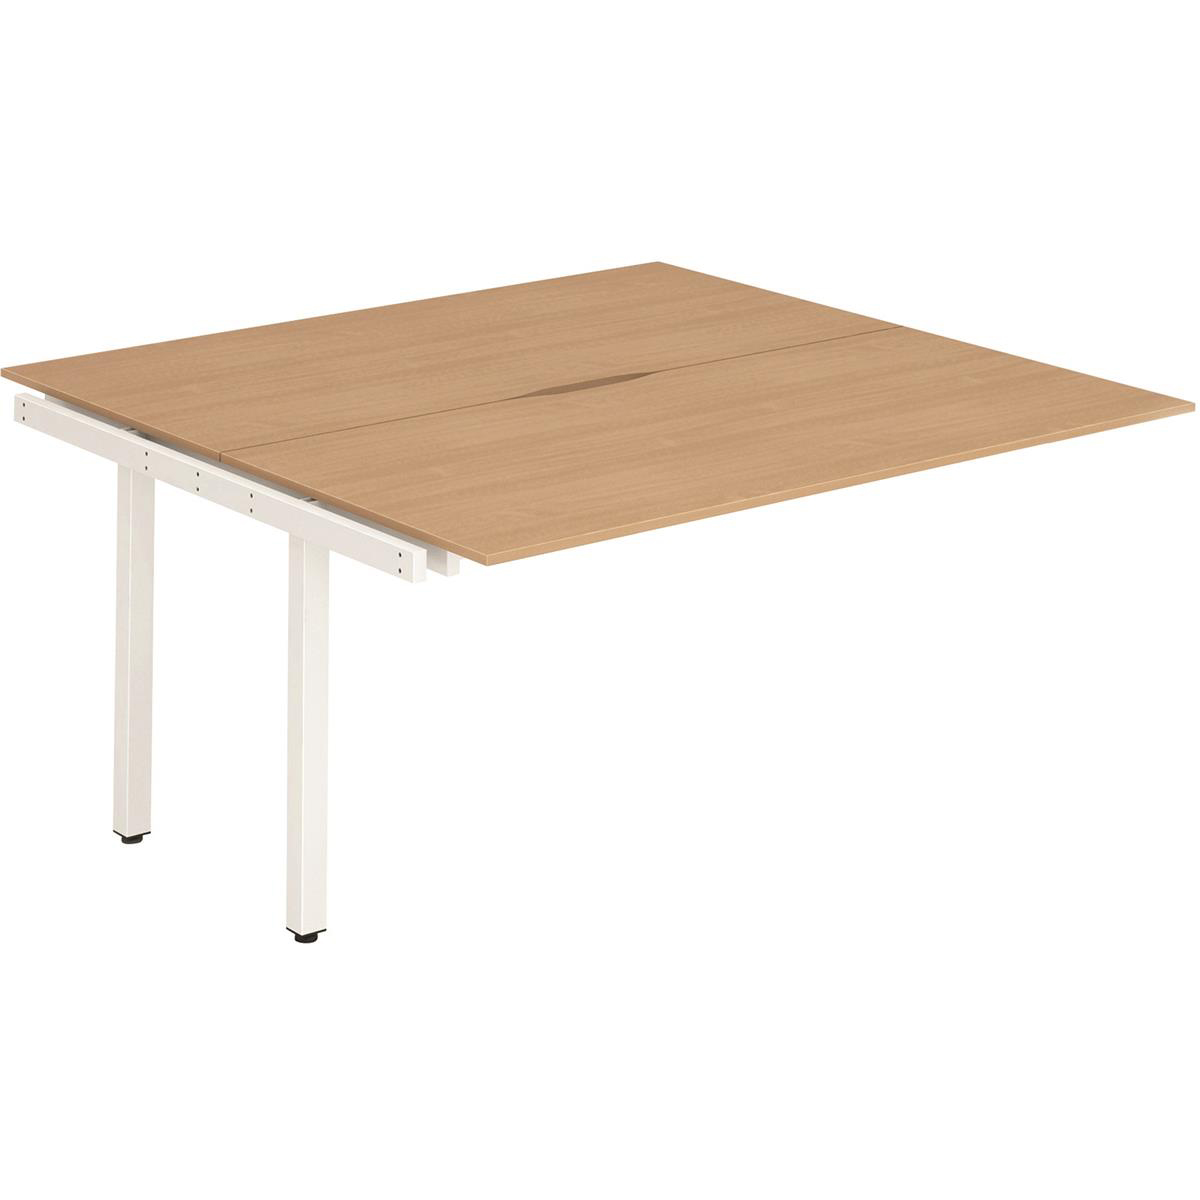 Trexus Bench Desk Double Extension Back to Back Configuration White Leg 1400x1600mm Beech Ref BE197